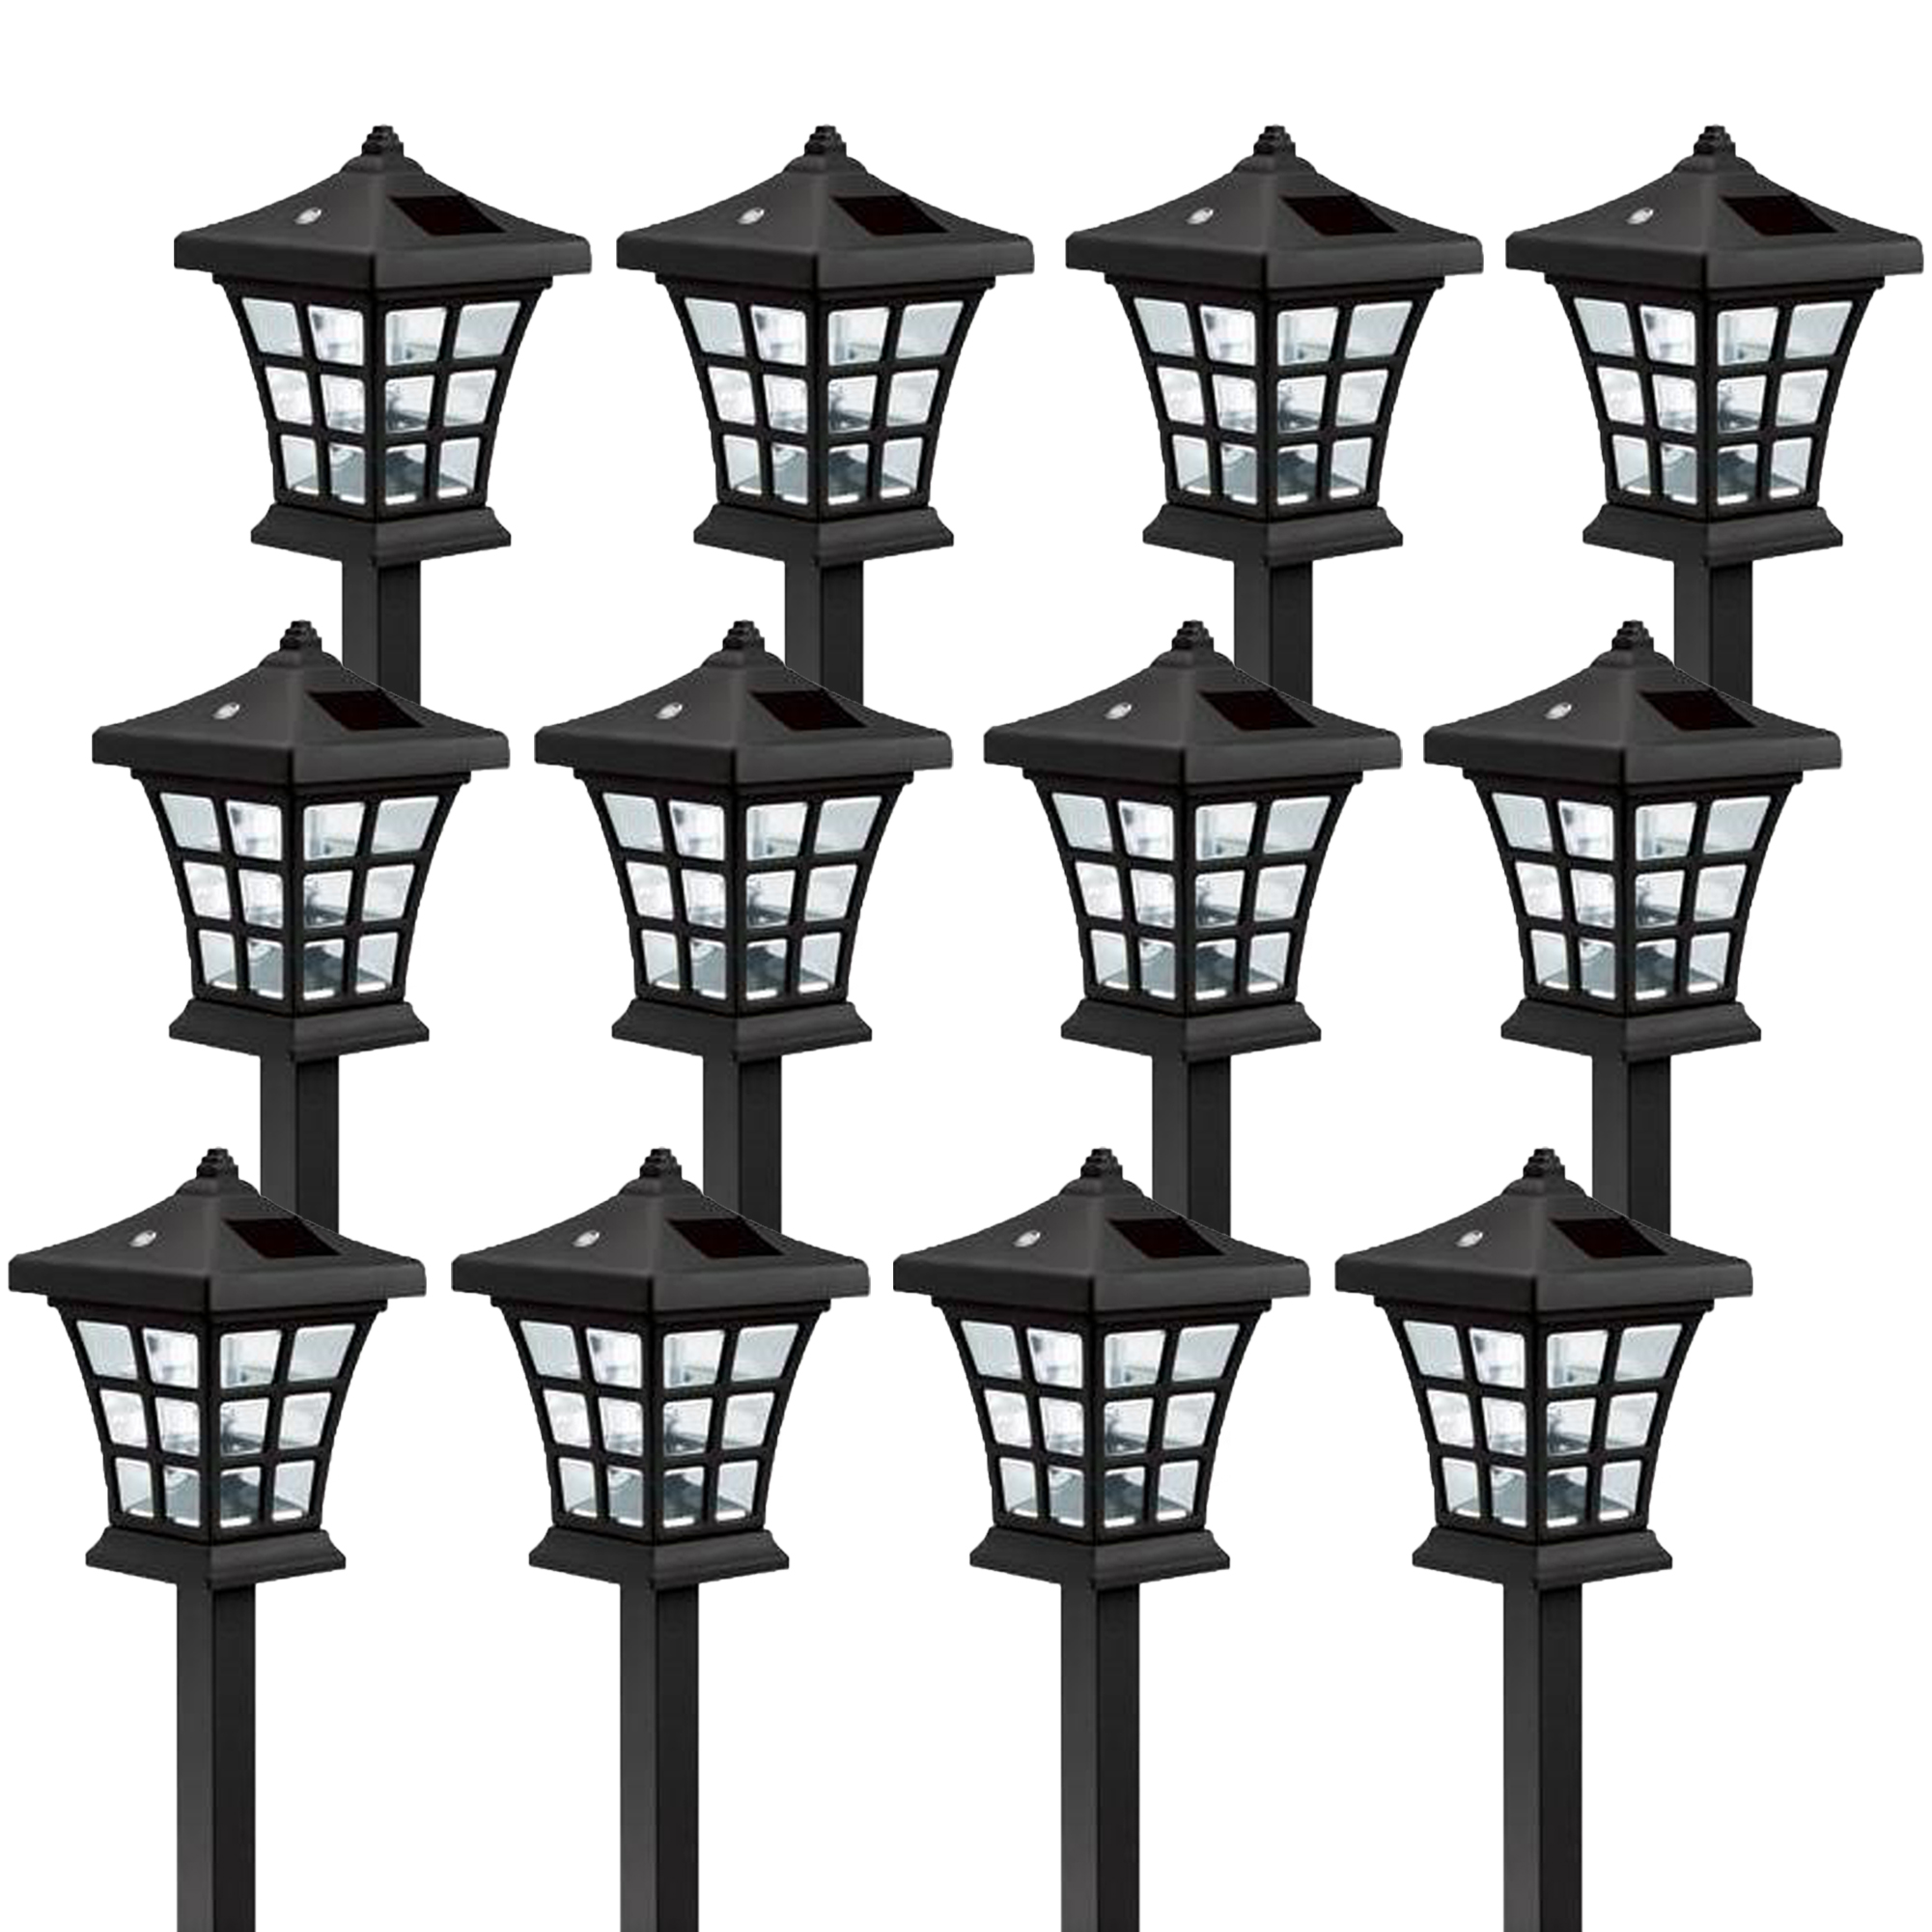 12 Pack Westinghouse Venture Black Solar Outdoor Garden Path LED Stake Light